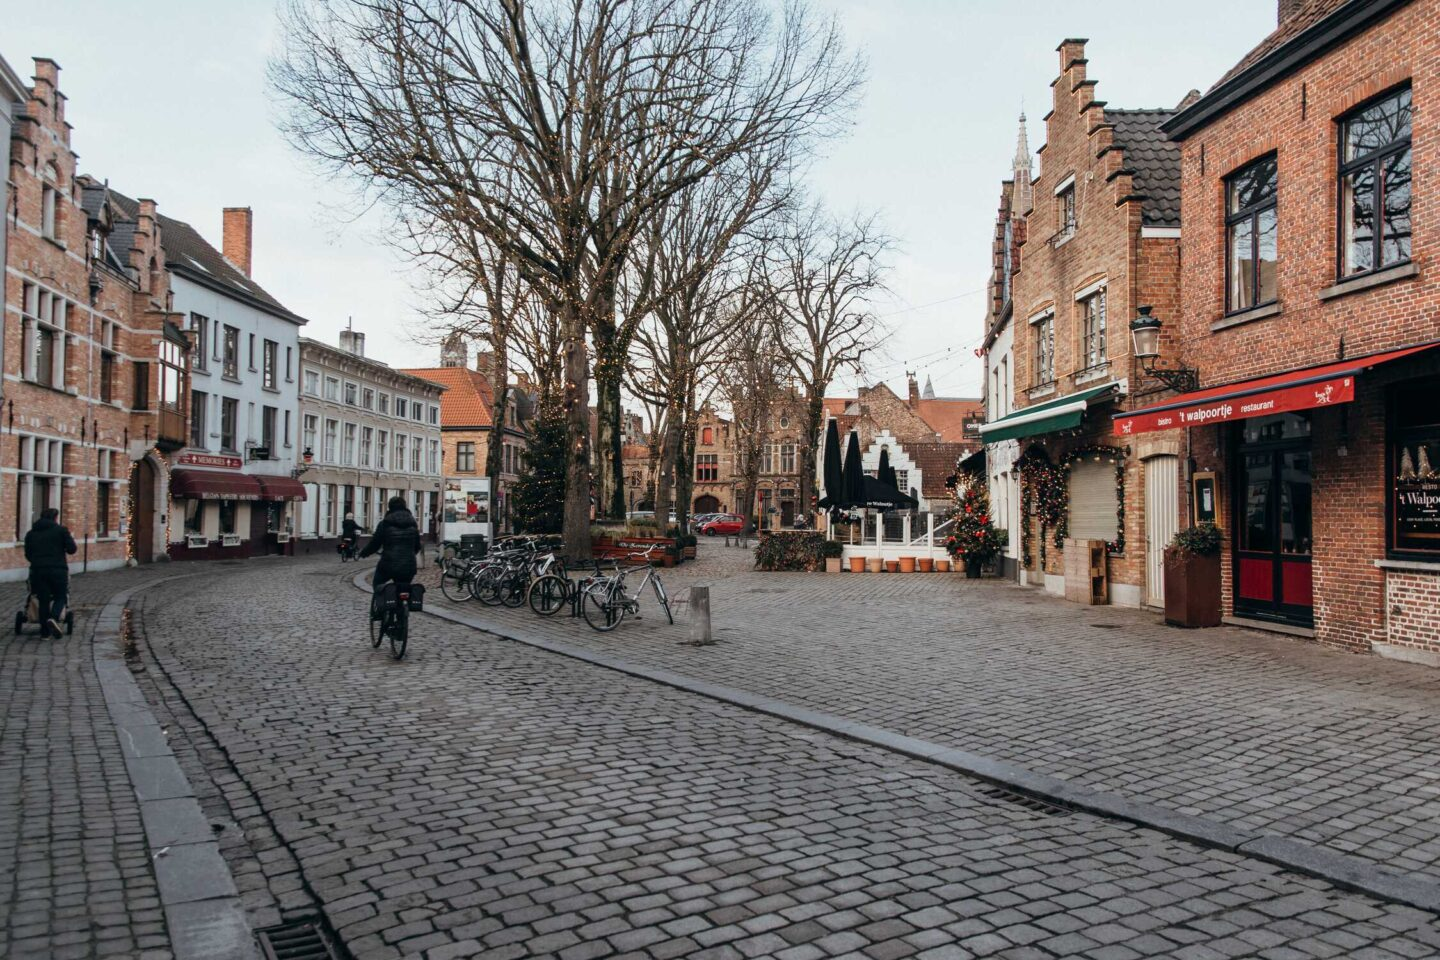 The Walplein square which is a must visit for our favourite brewery in bruges belgium during a bruges city break